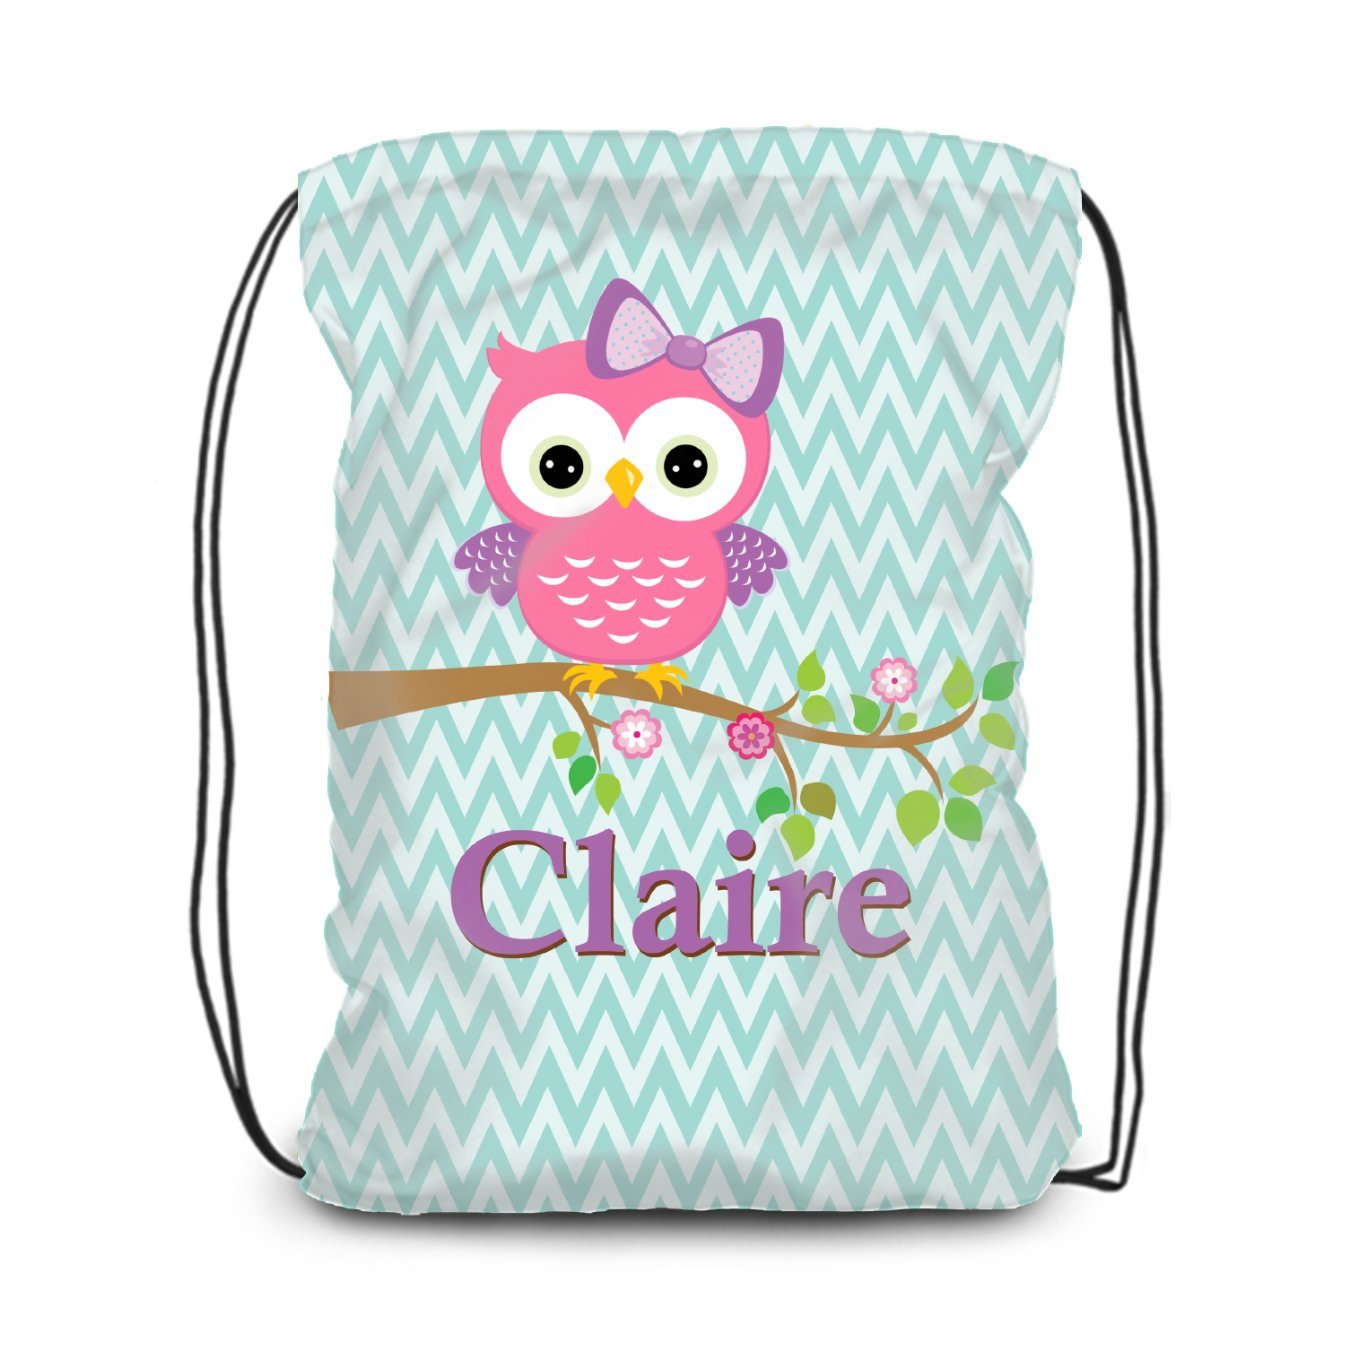 Owl Drawstring Backpack - Pink Owl Personalized Name Cinch Sack Bag